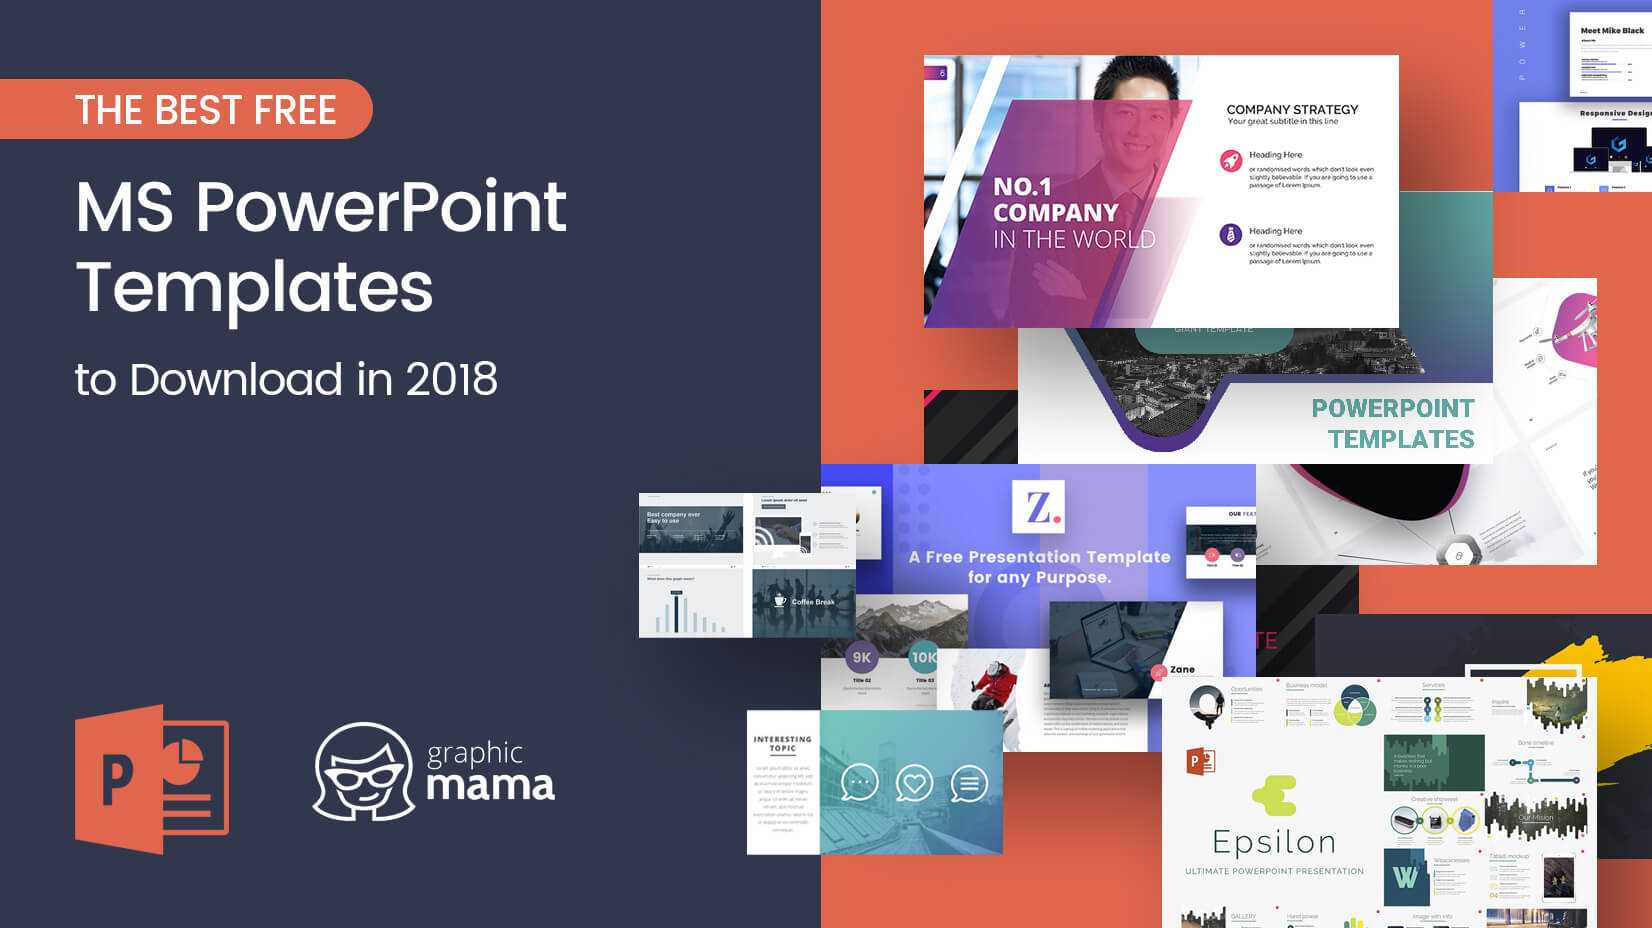 The Best Free Powerpoint Templates To Download In 2018 For Free Powerpoint Presentation Templates Downloads